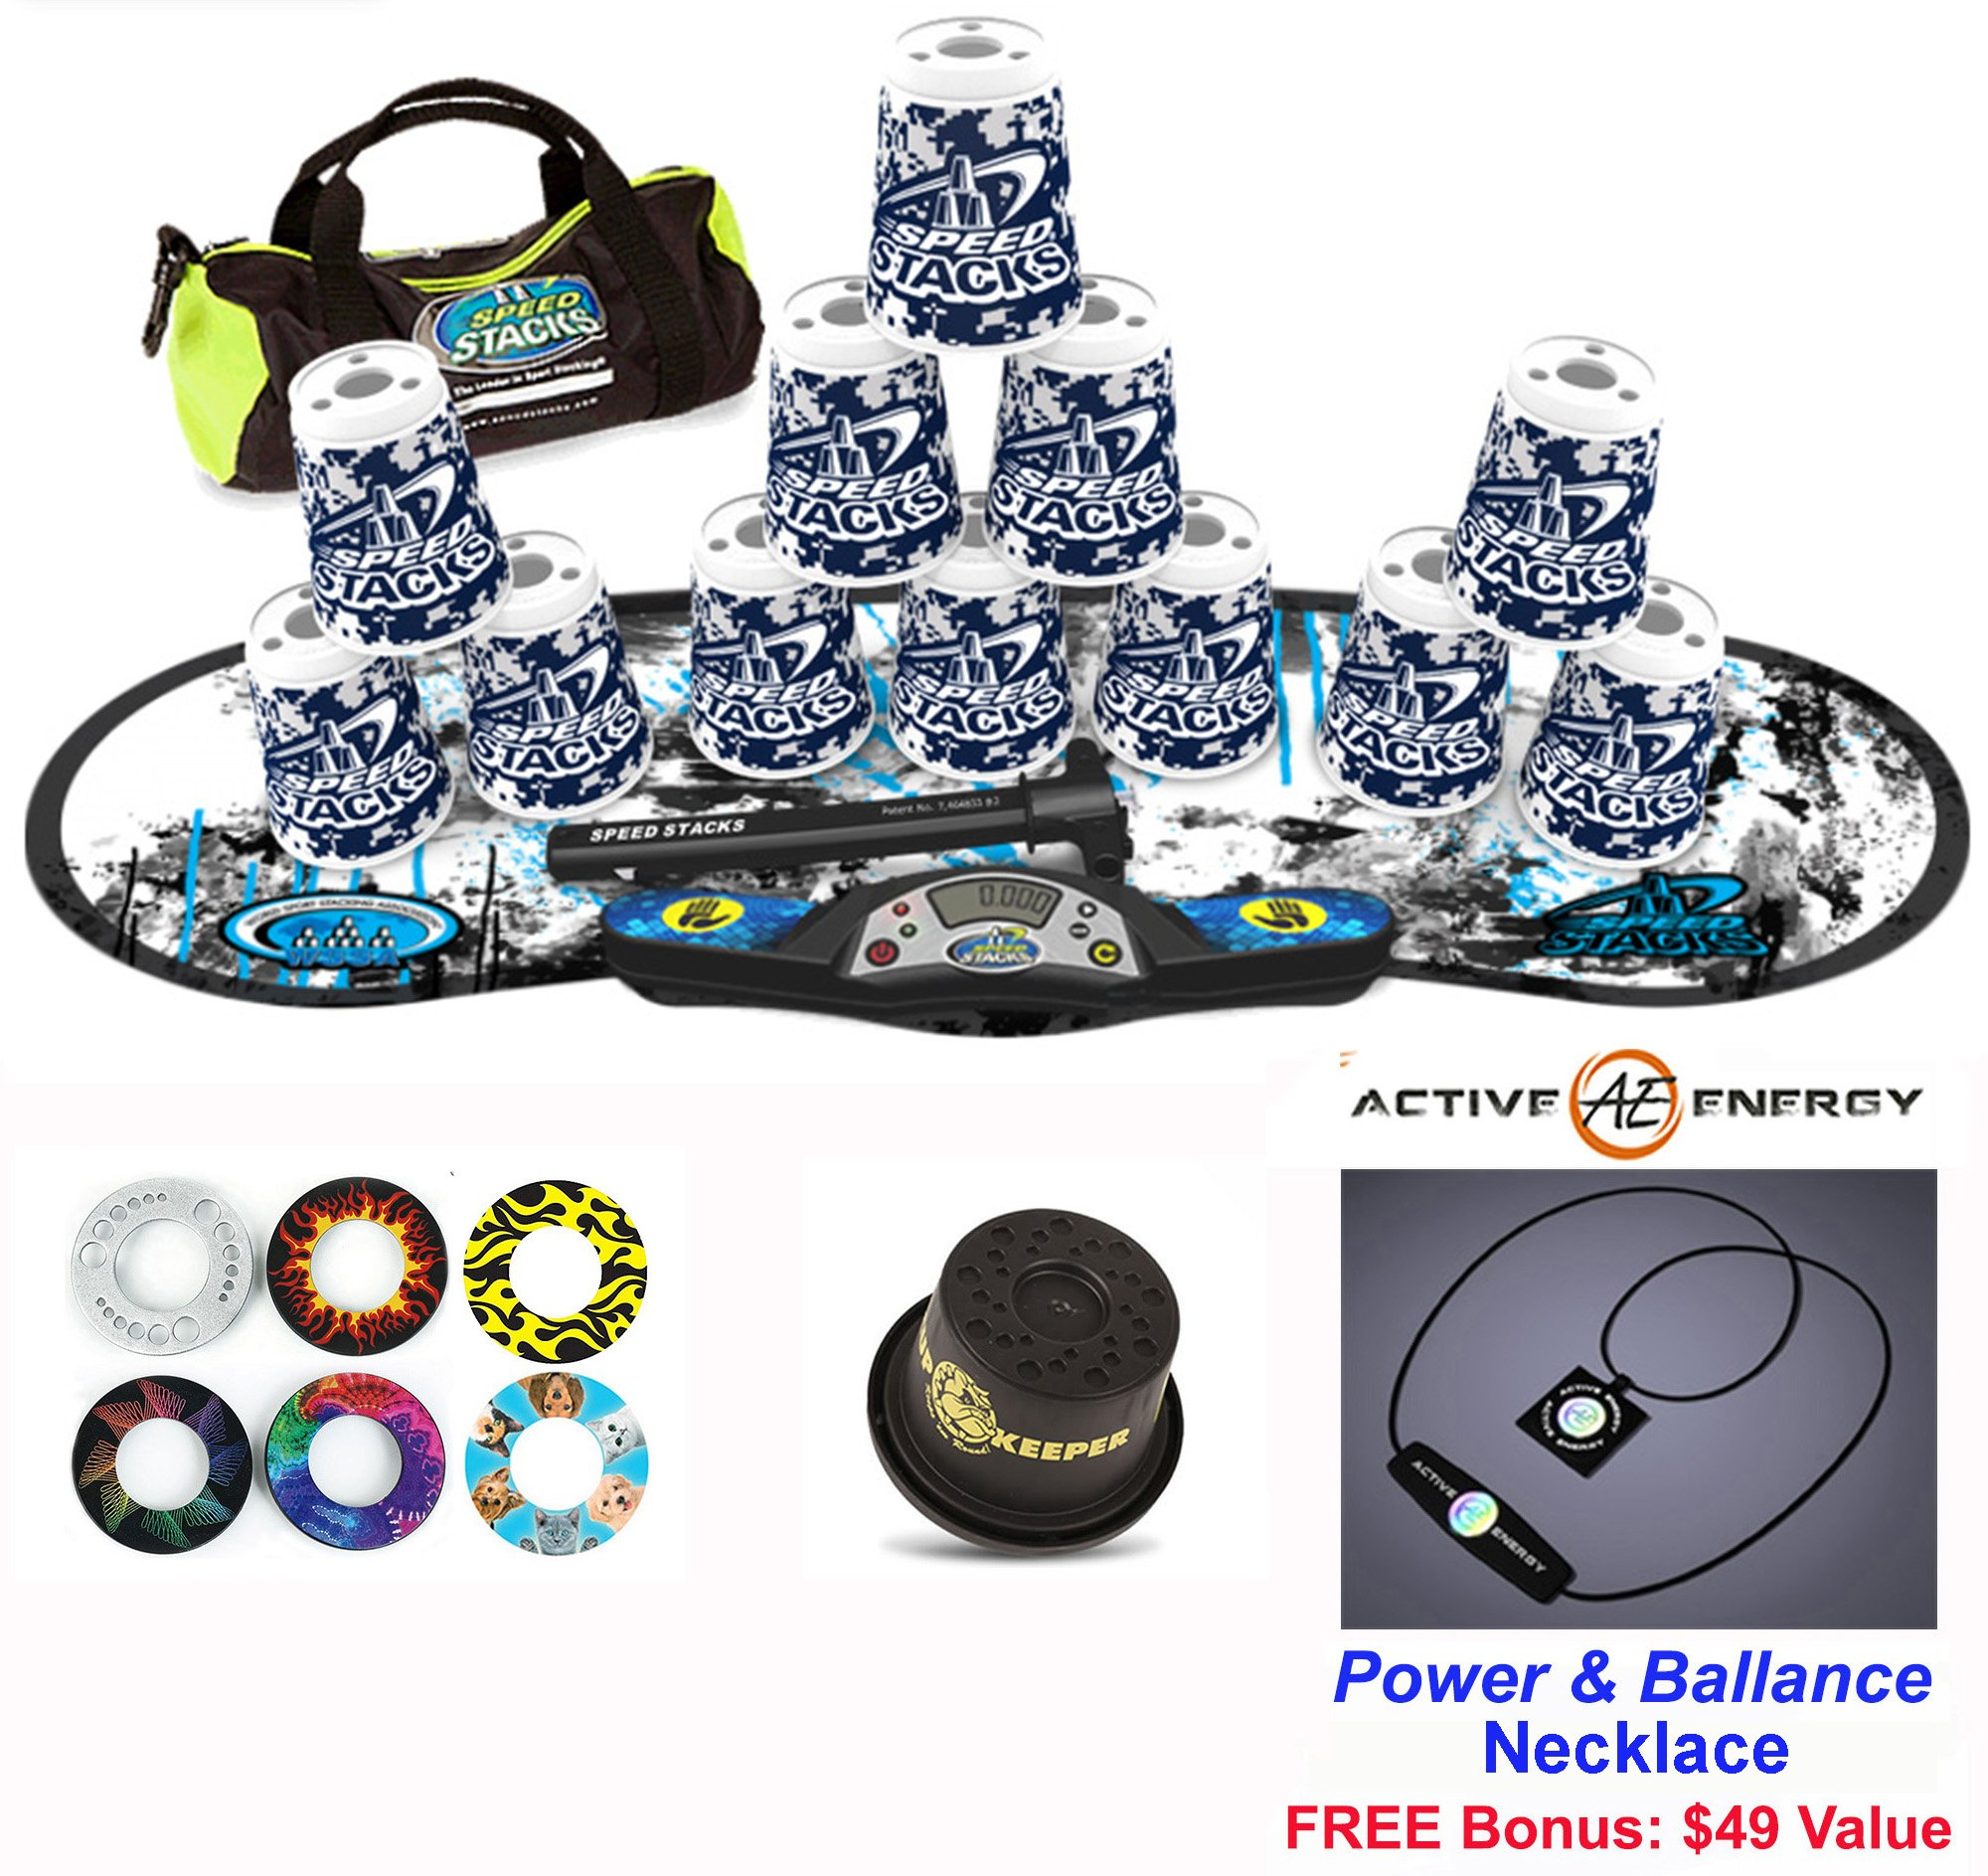 Speed Stacks Combo Set ''The Works'': 12 DIGITAL CAMO 4'' Cups, REBEL MUDD Gen 3 Mat, G4 Pro Timer, Cup Keeper, Stem, Gear Bag, 6 Snap Tops + Active Energy Necklace by Speed Stacks